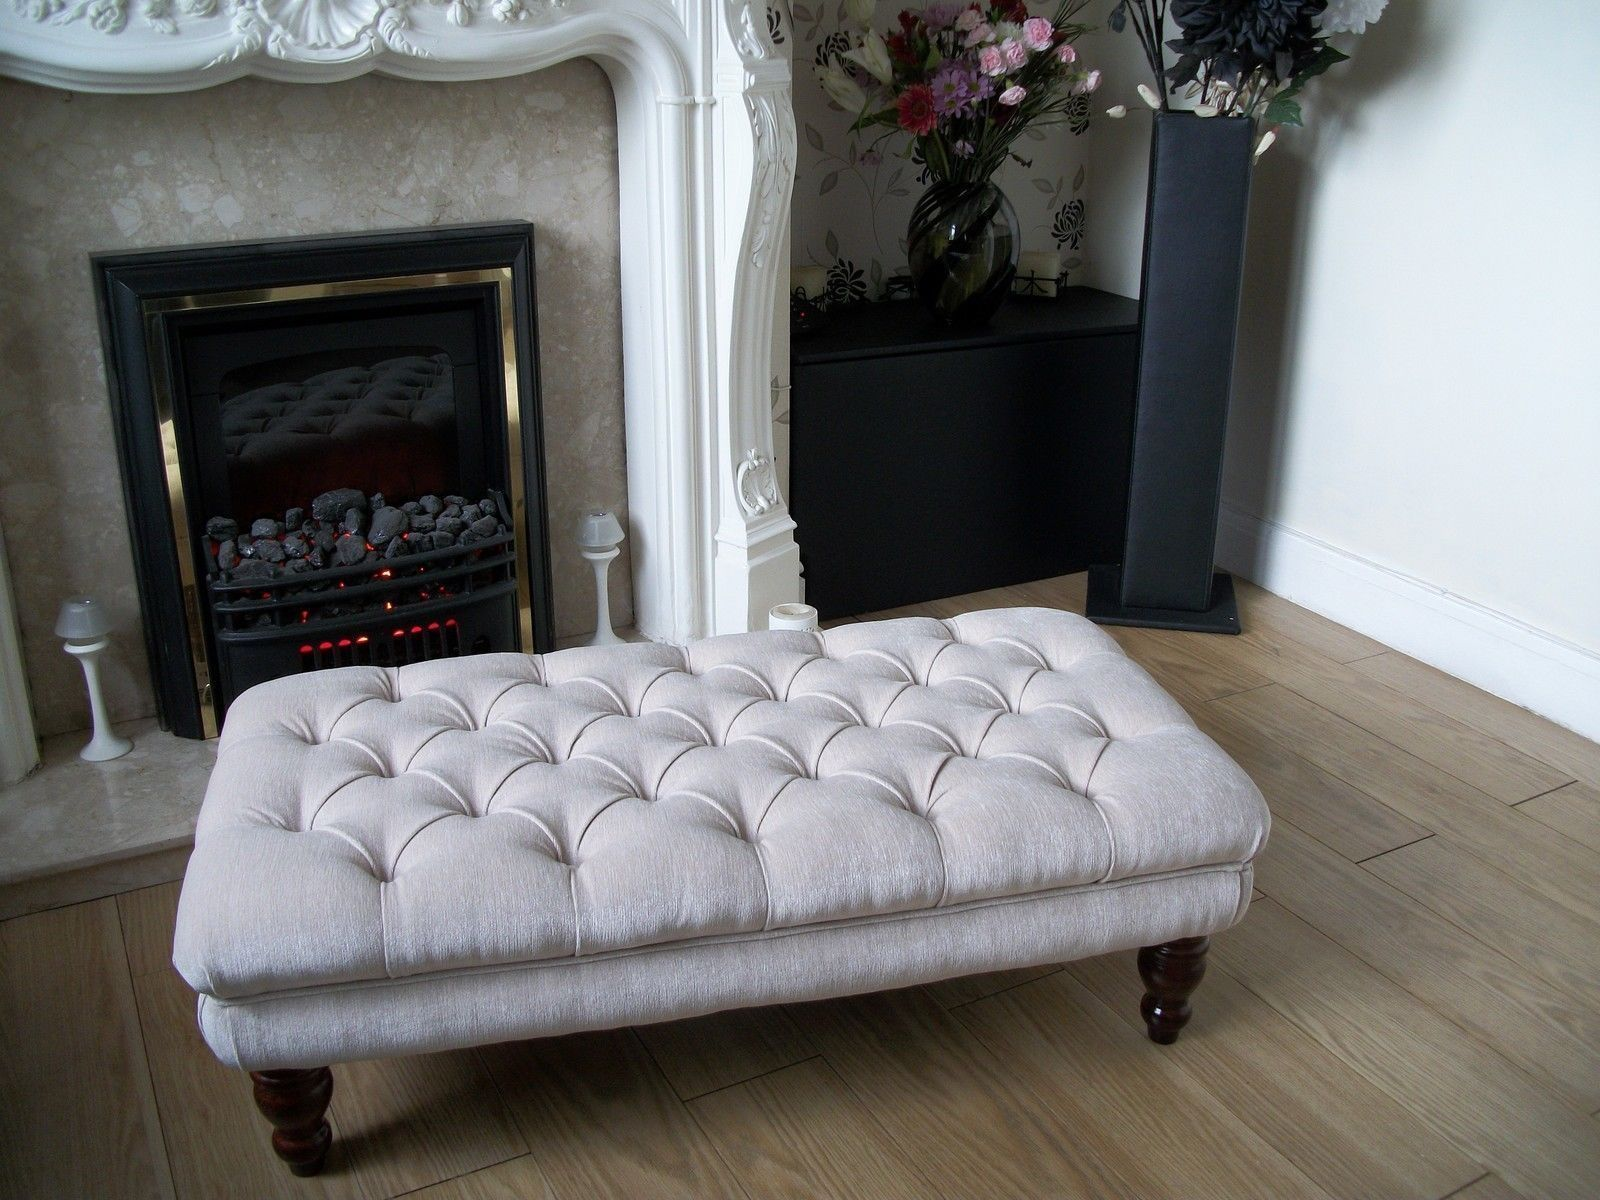 Chesterfield Style Oxford Deep Buttoned Large Footstool Coffee Table Ottoman Ebay Footstool Coffee Table Ottoman Table Fabric Coffee Table [ 1200 x 1600 Pixel ]